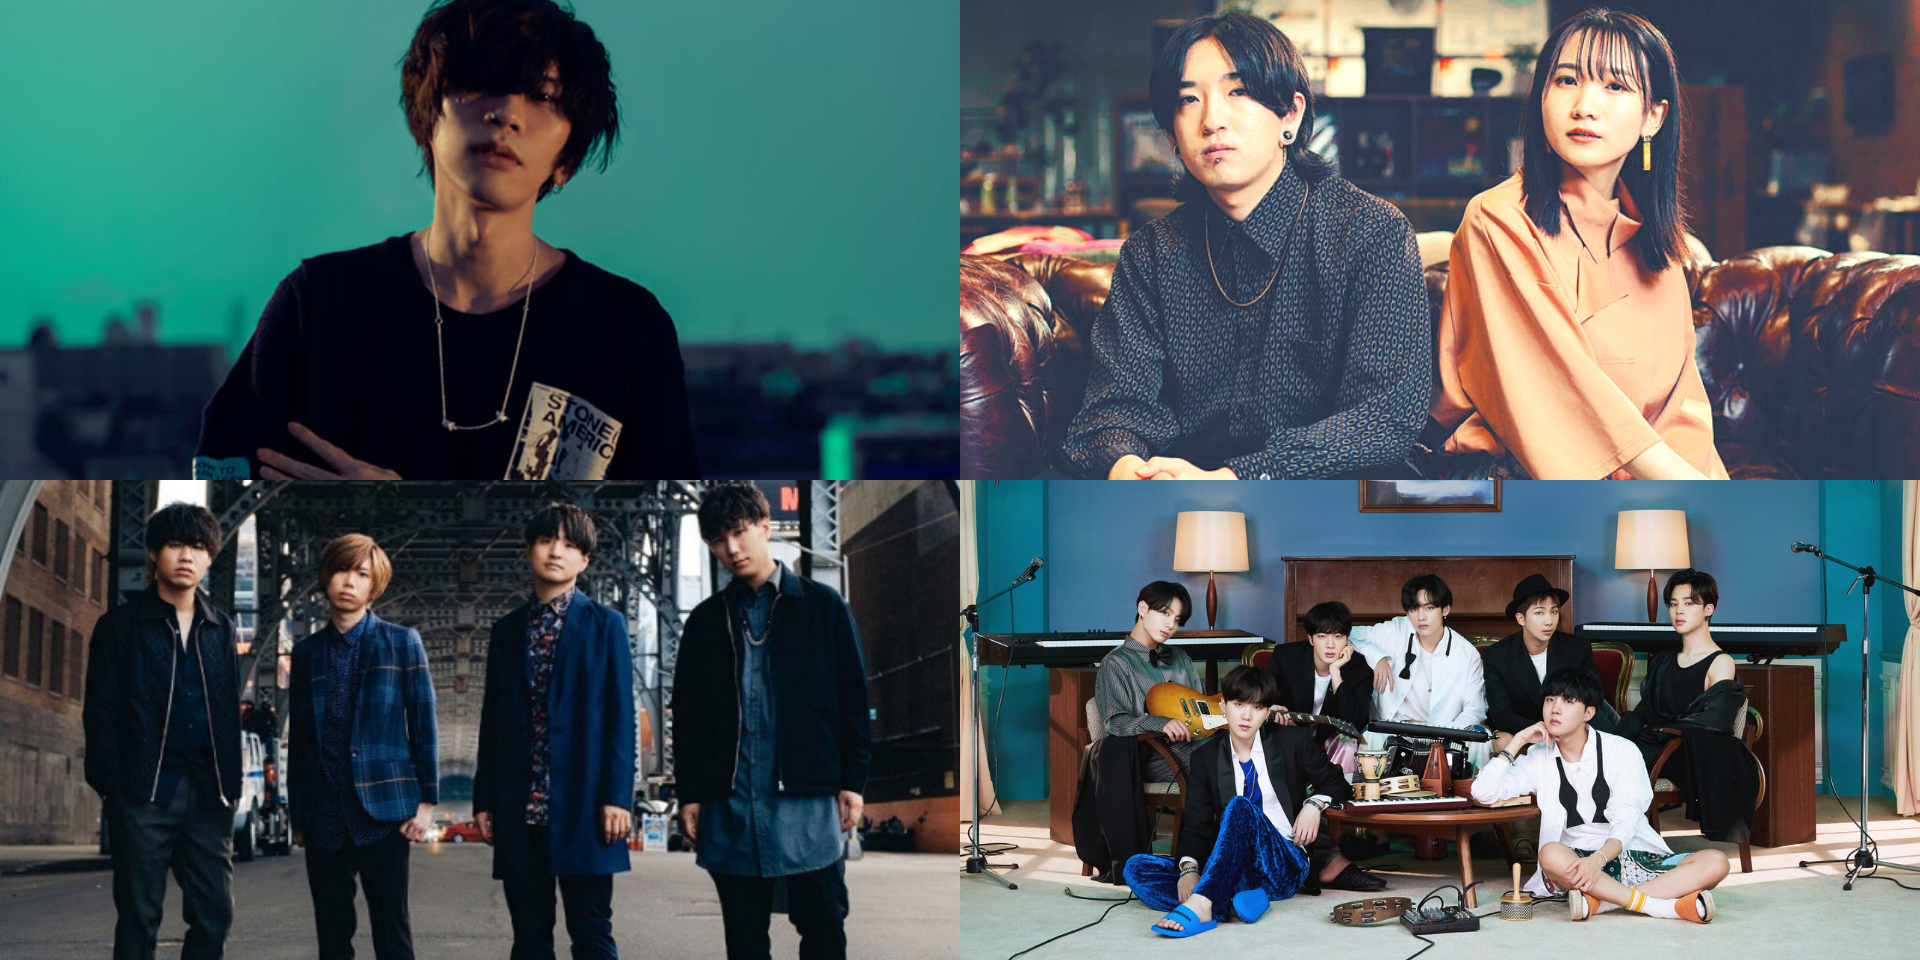 Official Hige Dandism, YOASOBI, Kenshi Yonezu, BTS, and more win at the 2021 SPACE SHOWER MUSIC AWARDS